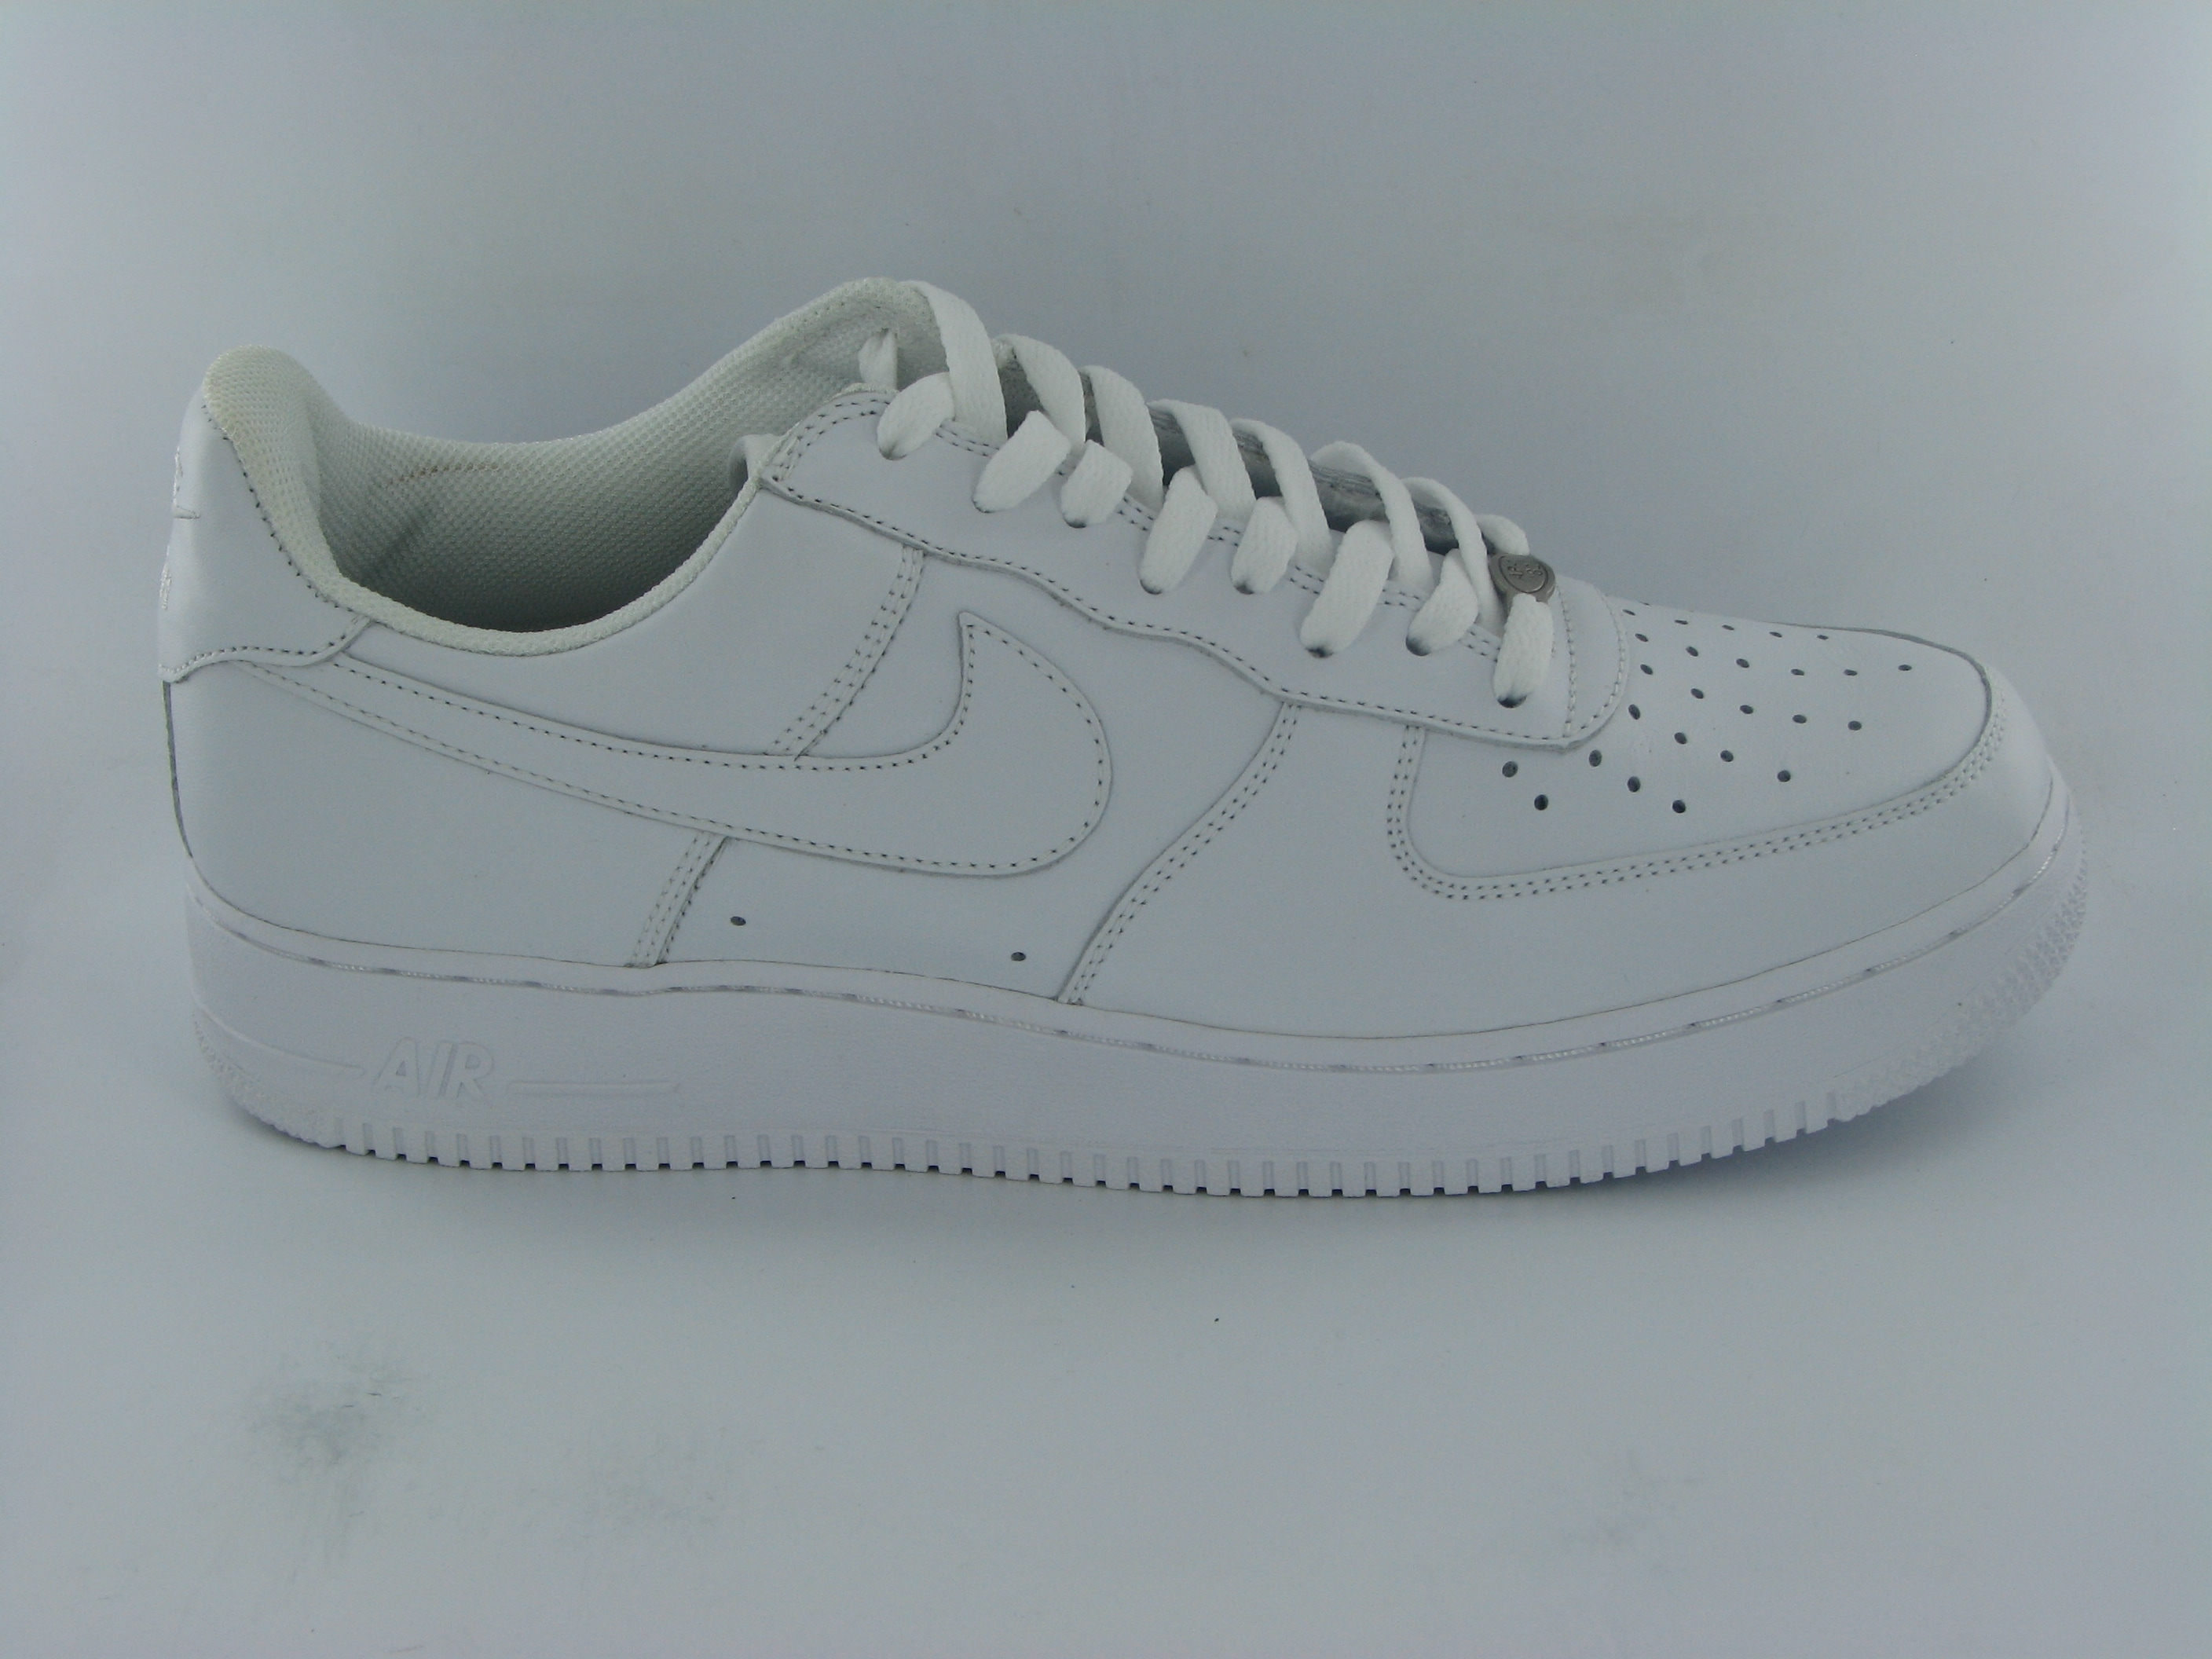 Nike air force 1 mid premium thanksgiving sold out - Nike Air Force 1 306353 112